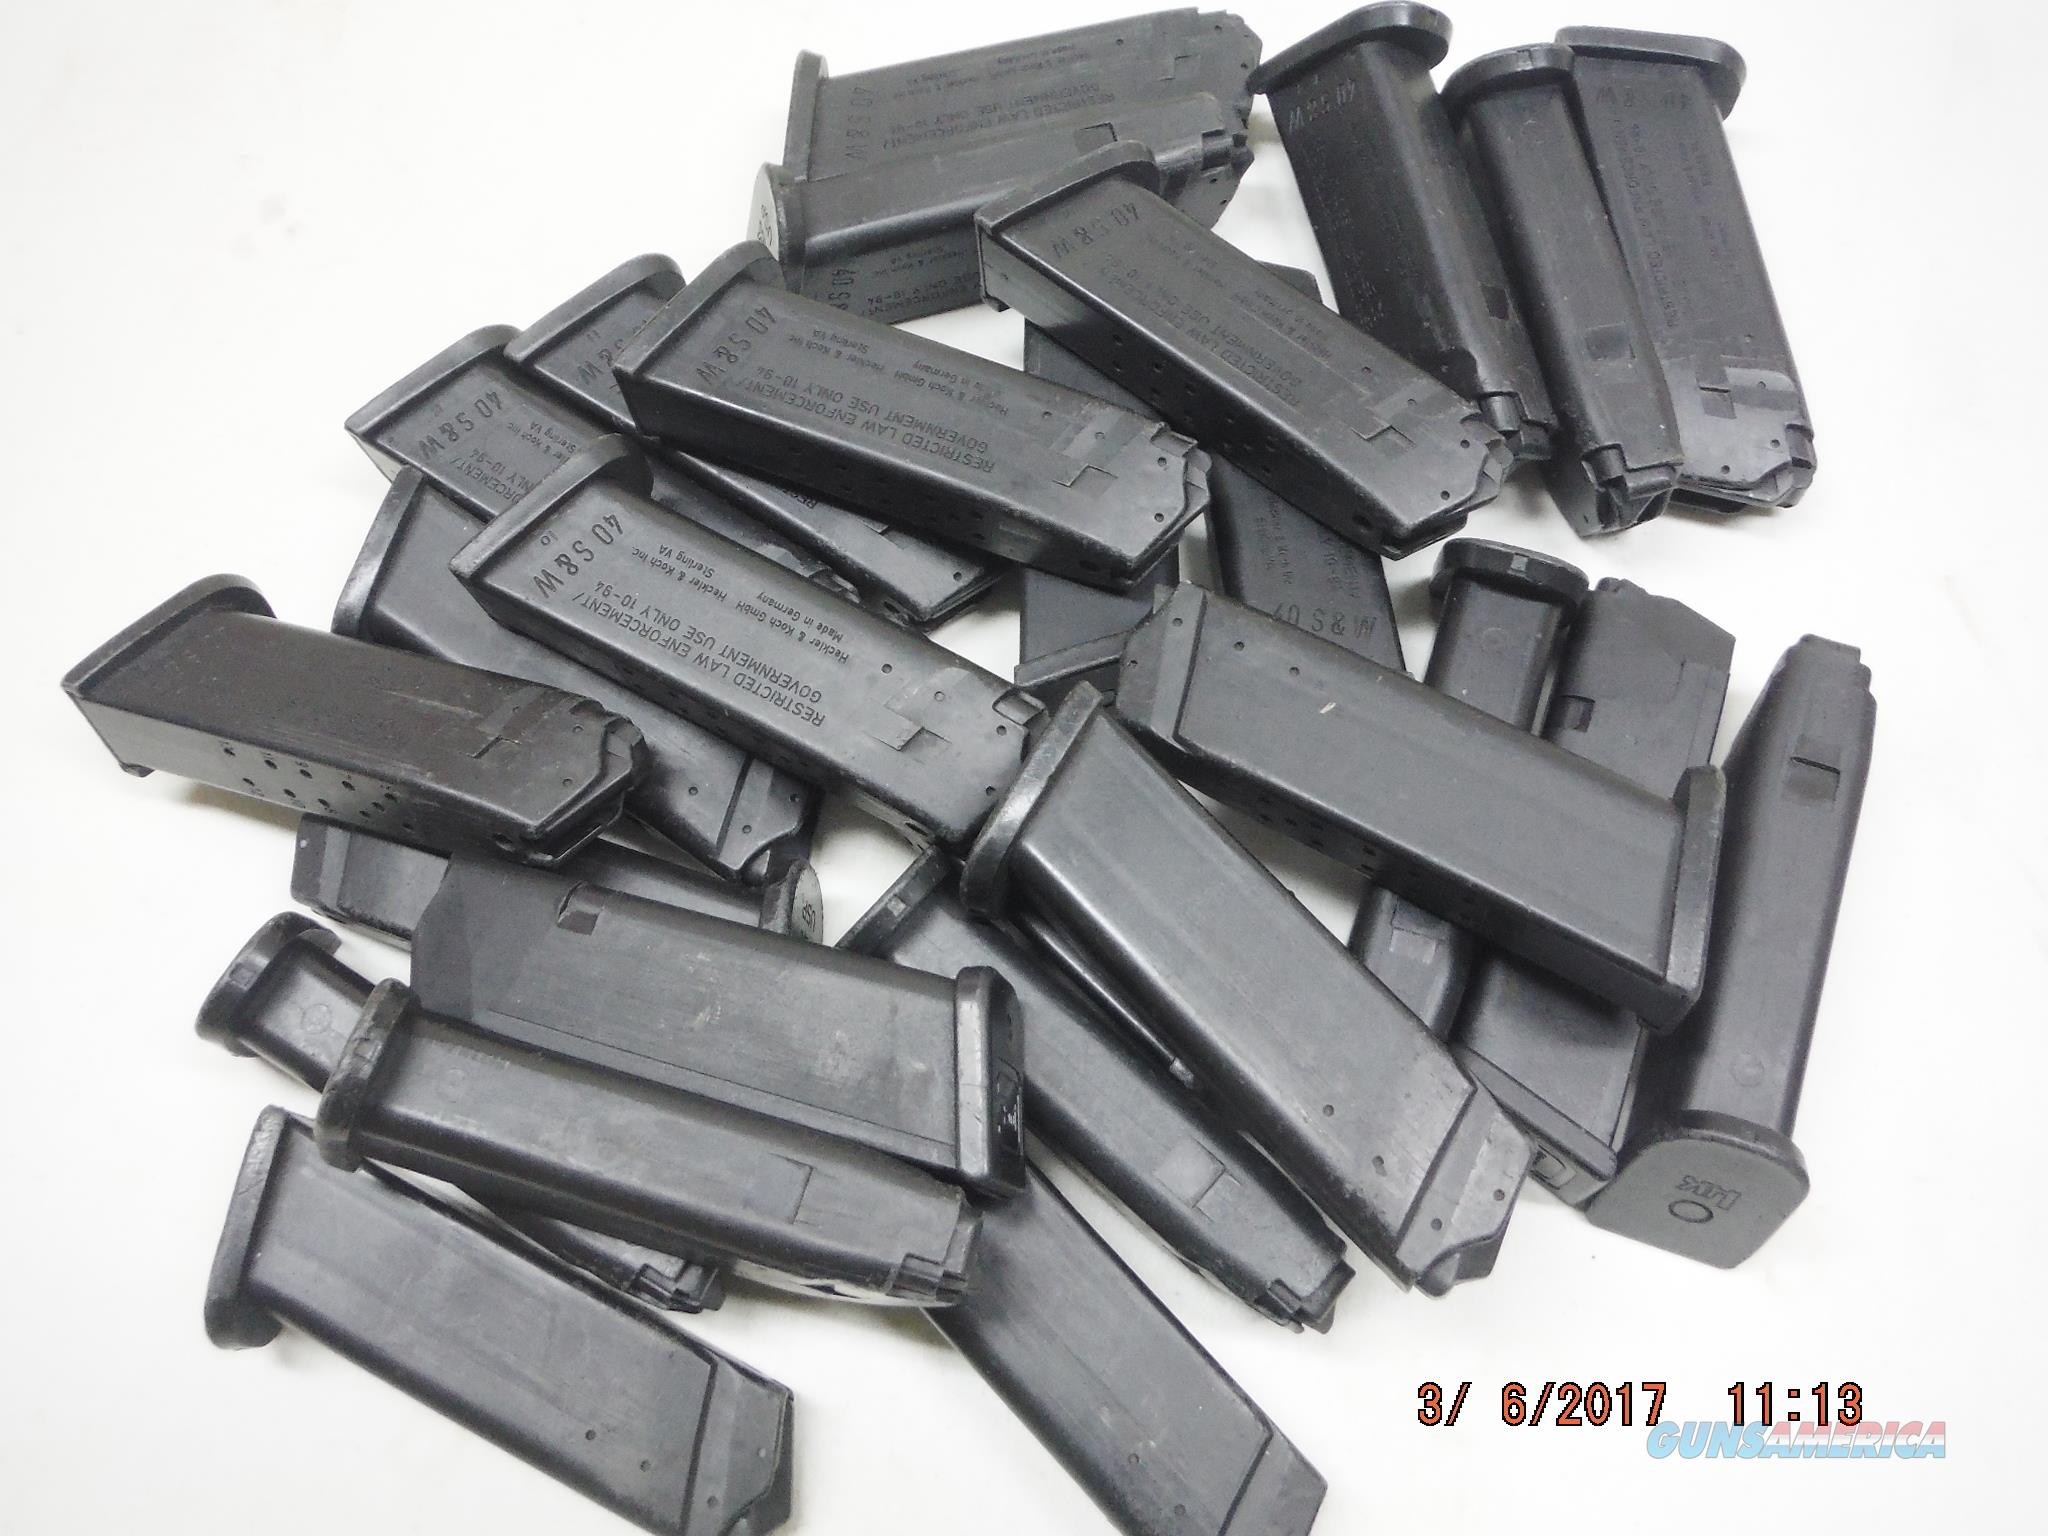 HK USP 40 Magazine 40 S&W 13Rd Factory OEM USP40  Non-Guns > Magazines & Clips > Pistol Magazines > Other